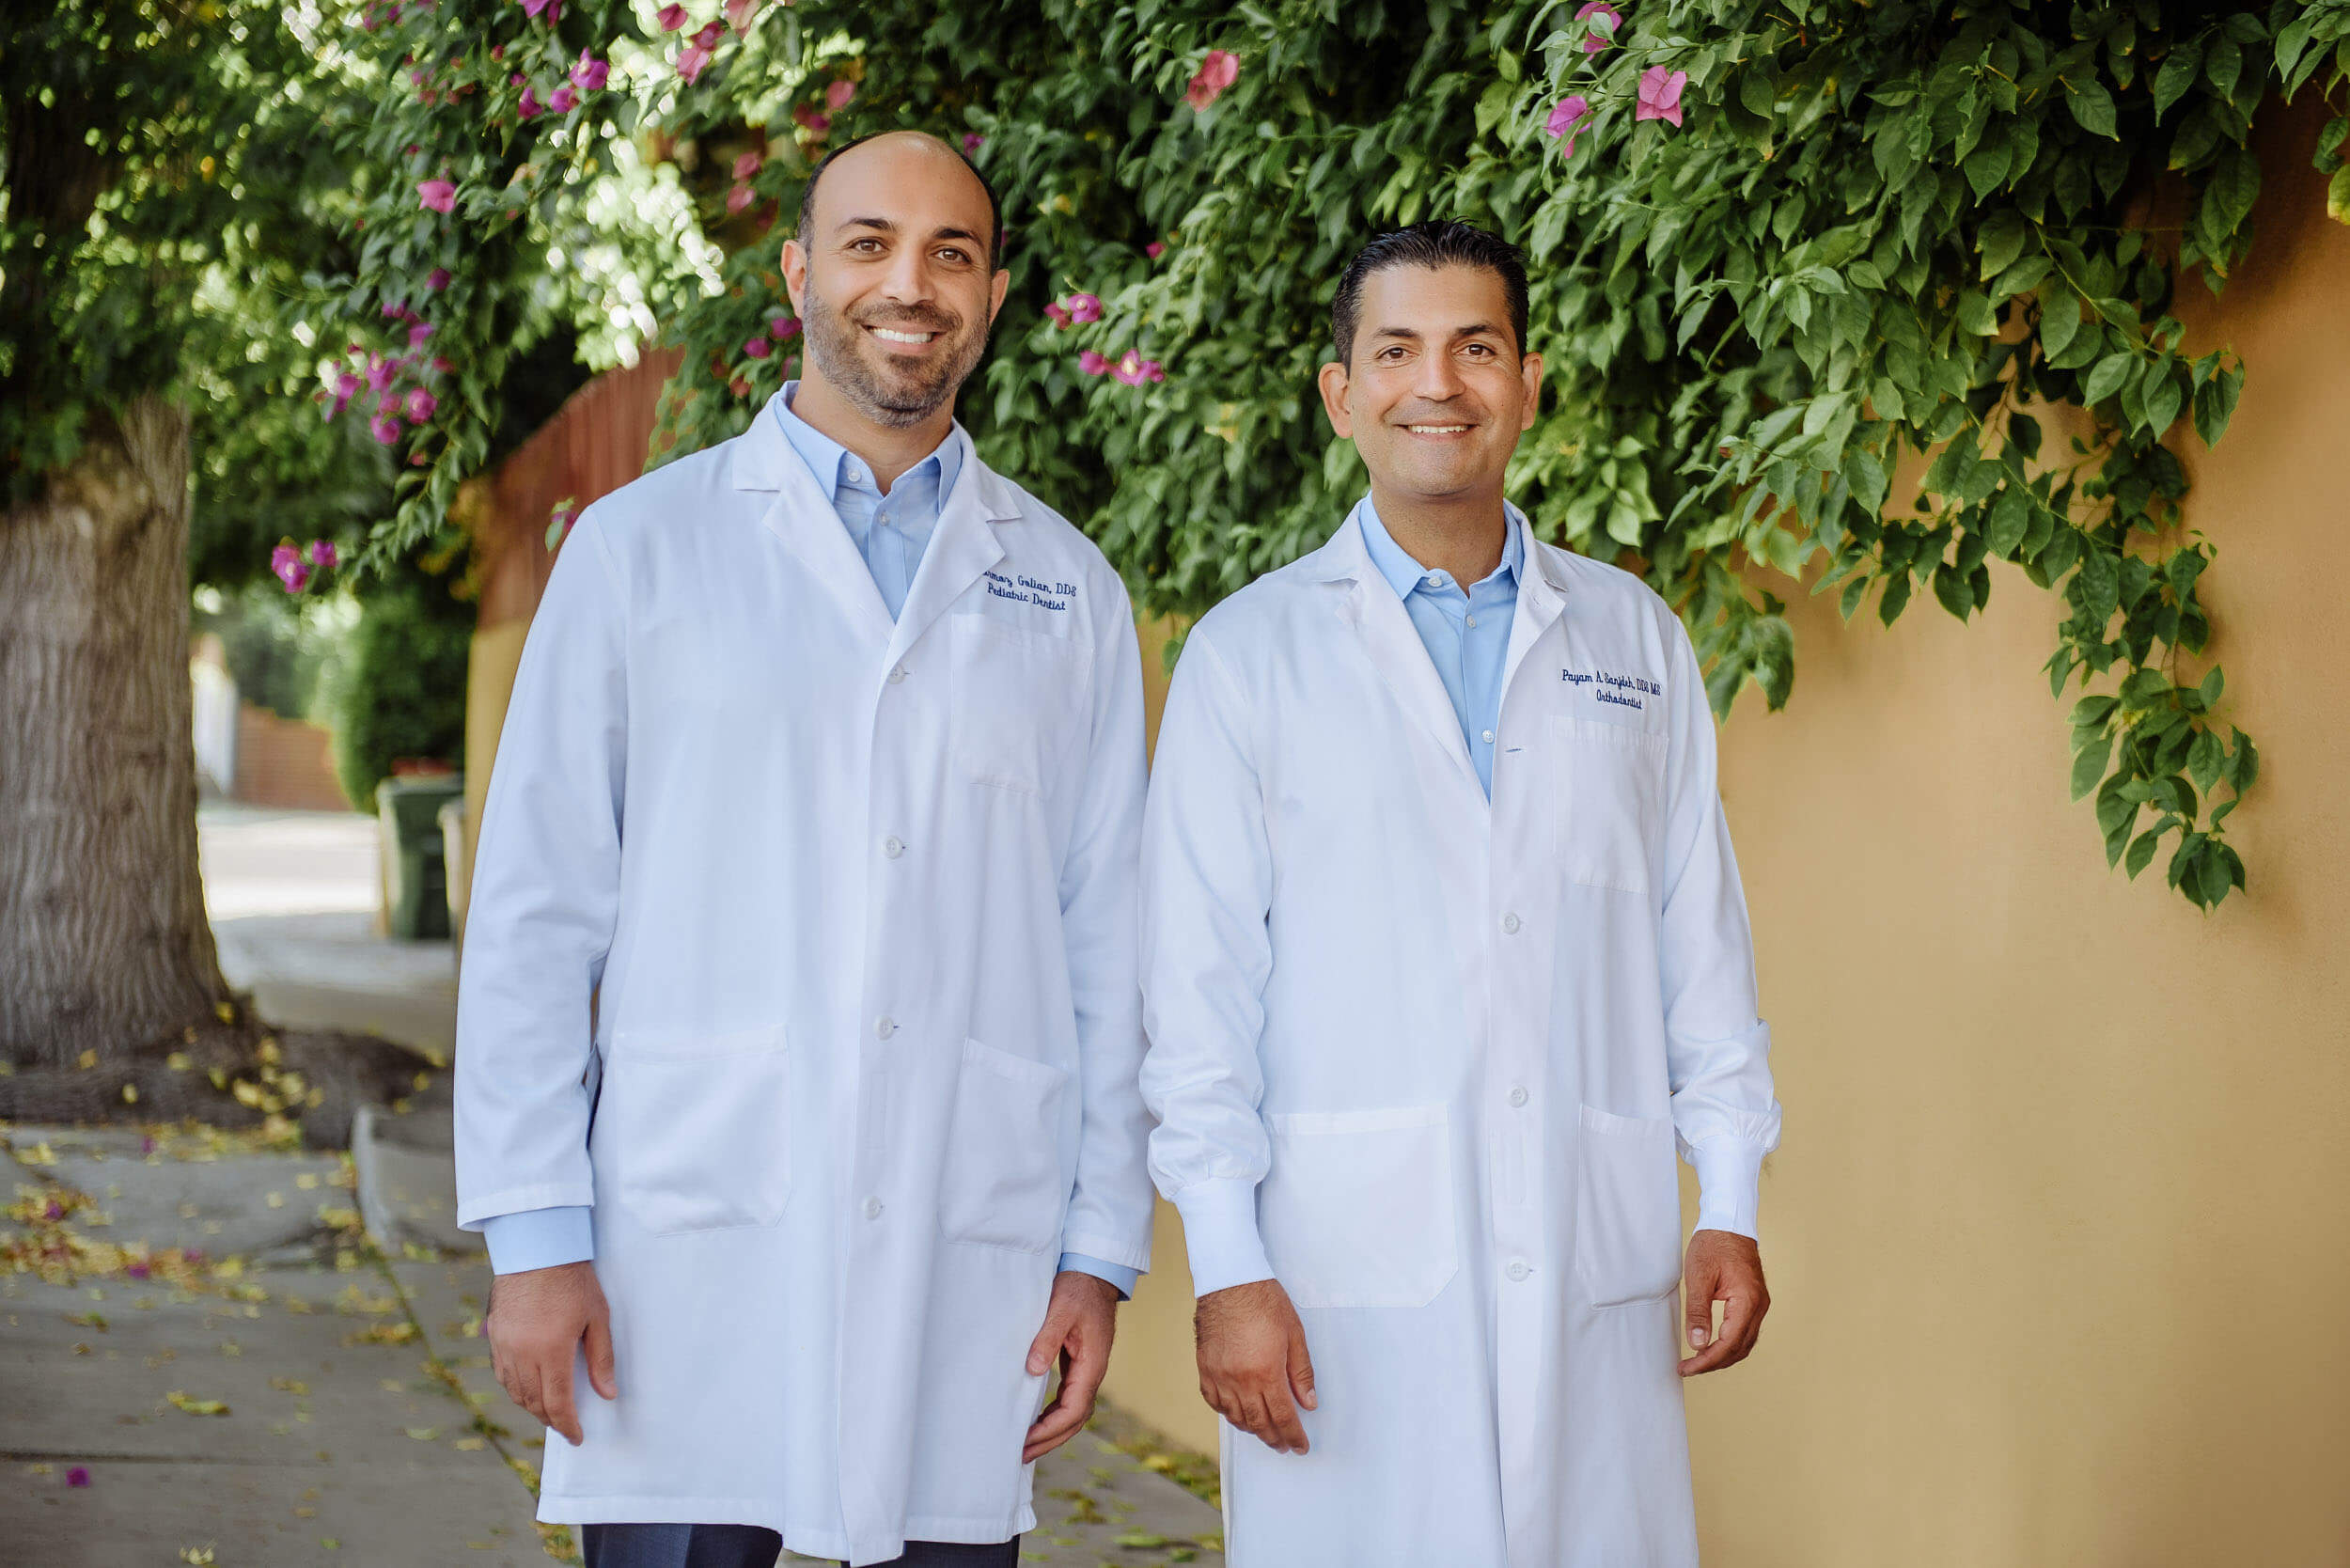 Dr. Golian and Dr. Sanjideh